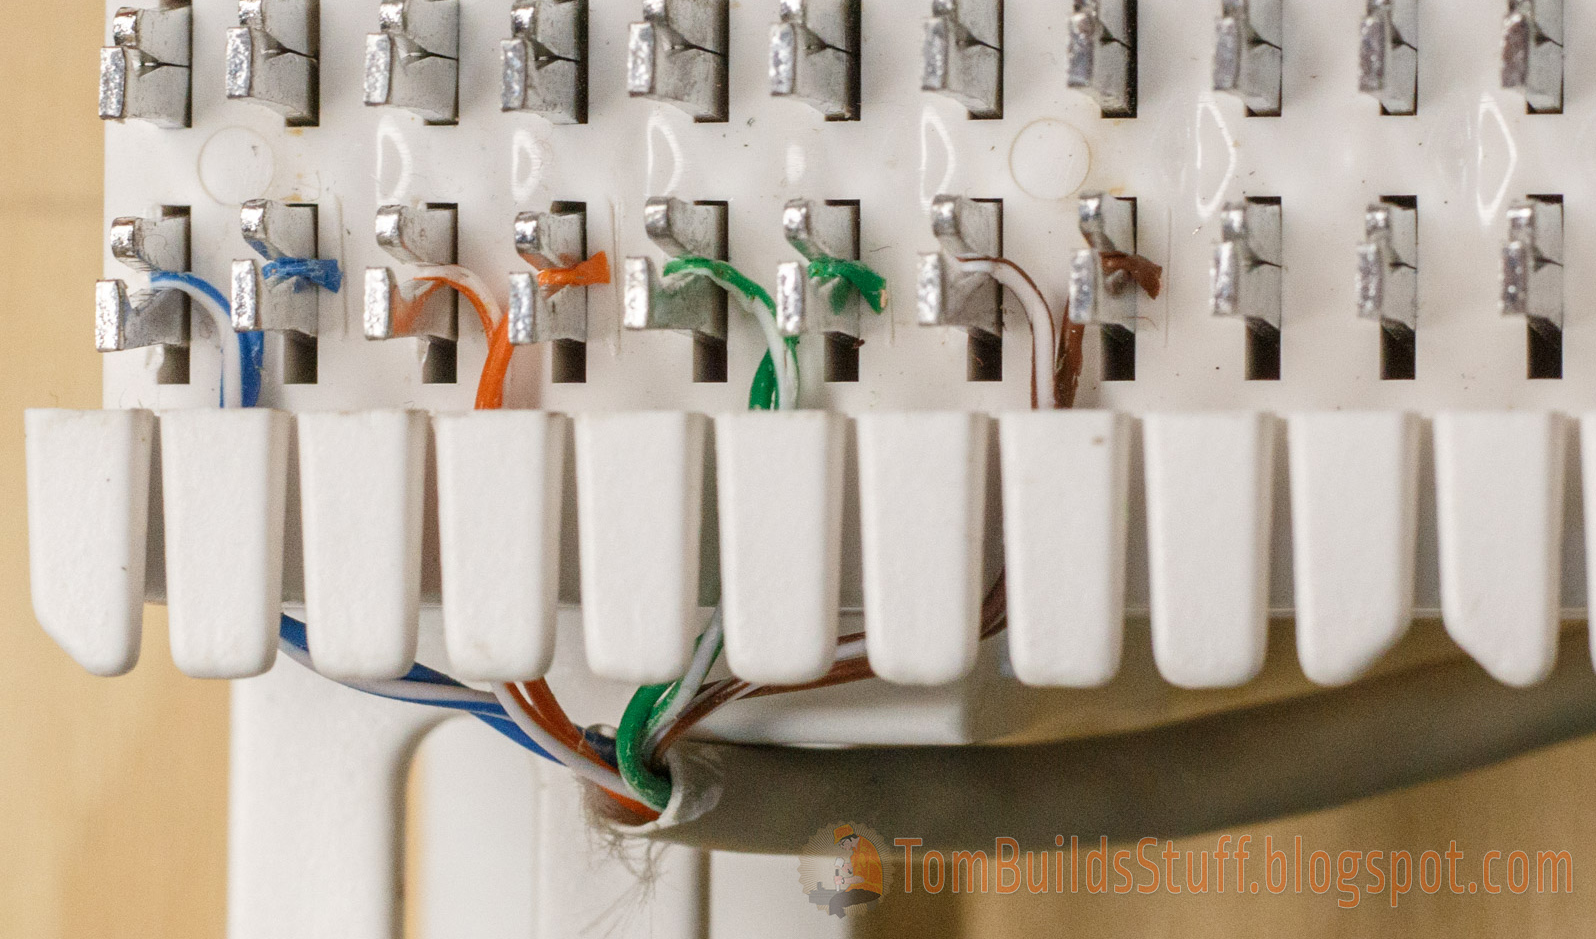 How To Wire A 4 Line Bridge With 66 Block Cat 5 Punch Down Wiring Diagram Get Free Image About Its Easier For Me Just Remember Blue Orange Green Brown And The White Striped Goes On Top